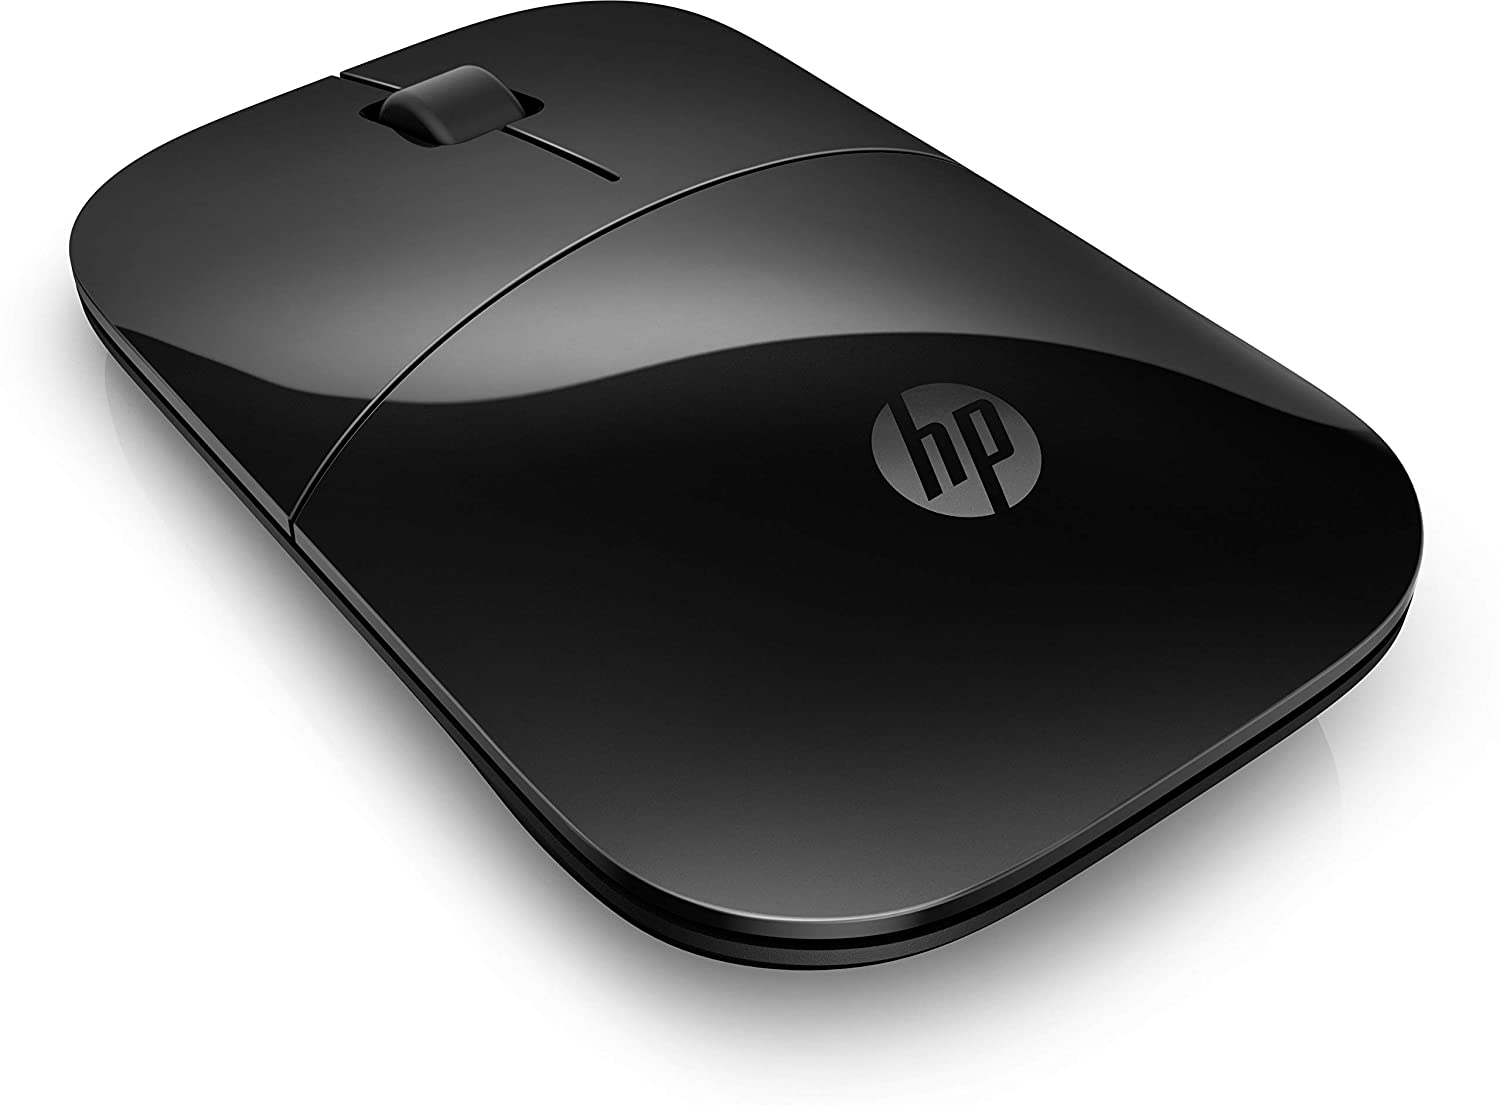 HP Z3700 Wireless Mouse (Black)